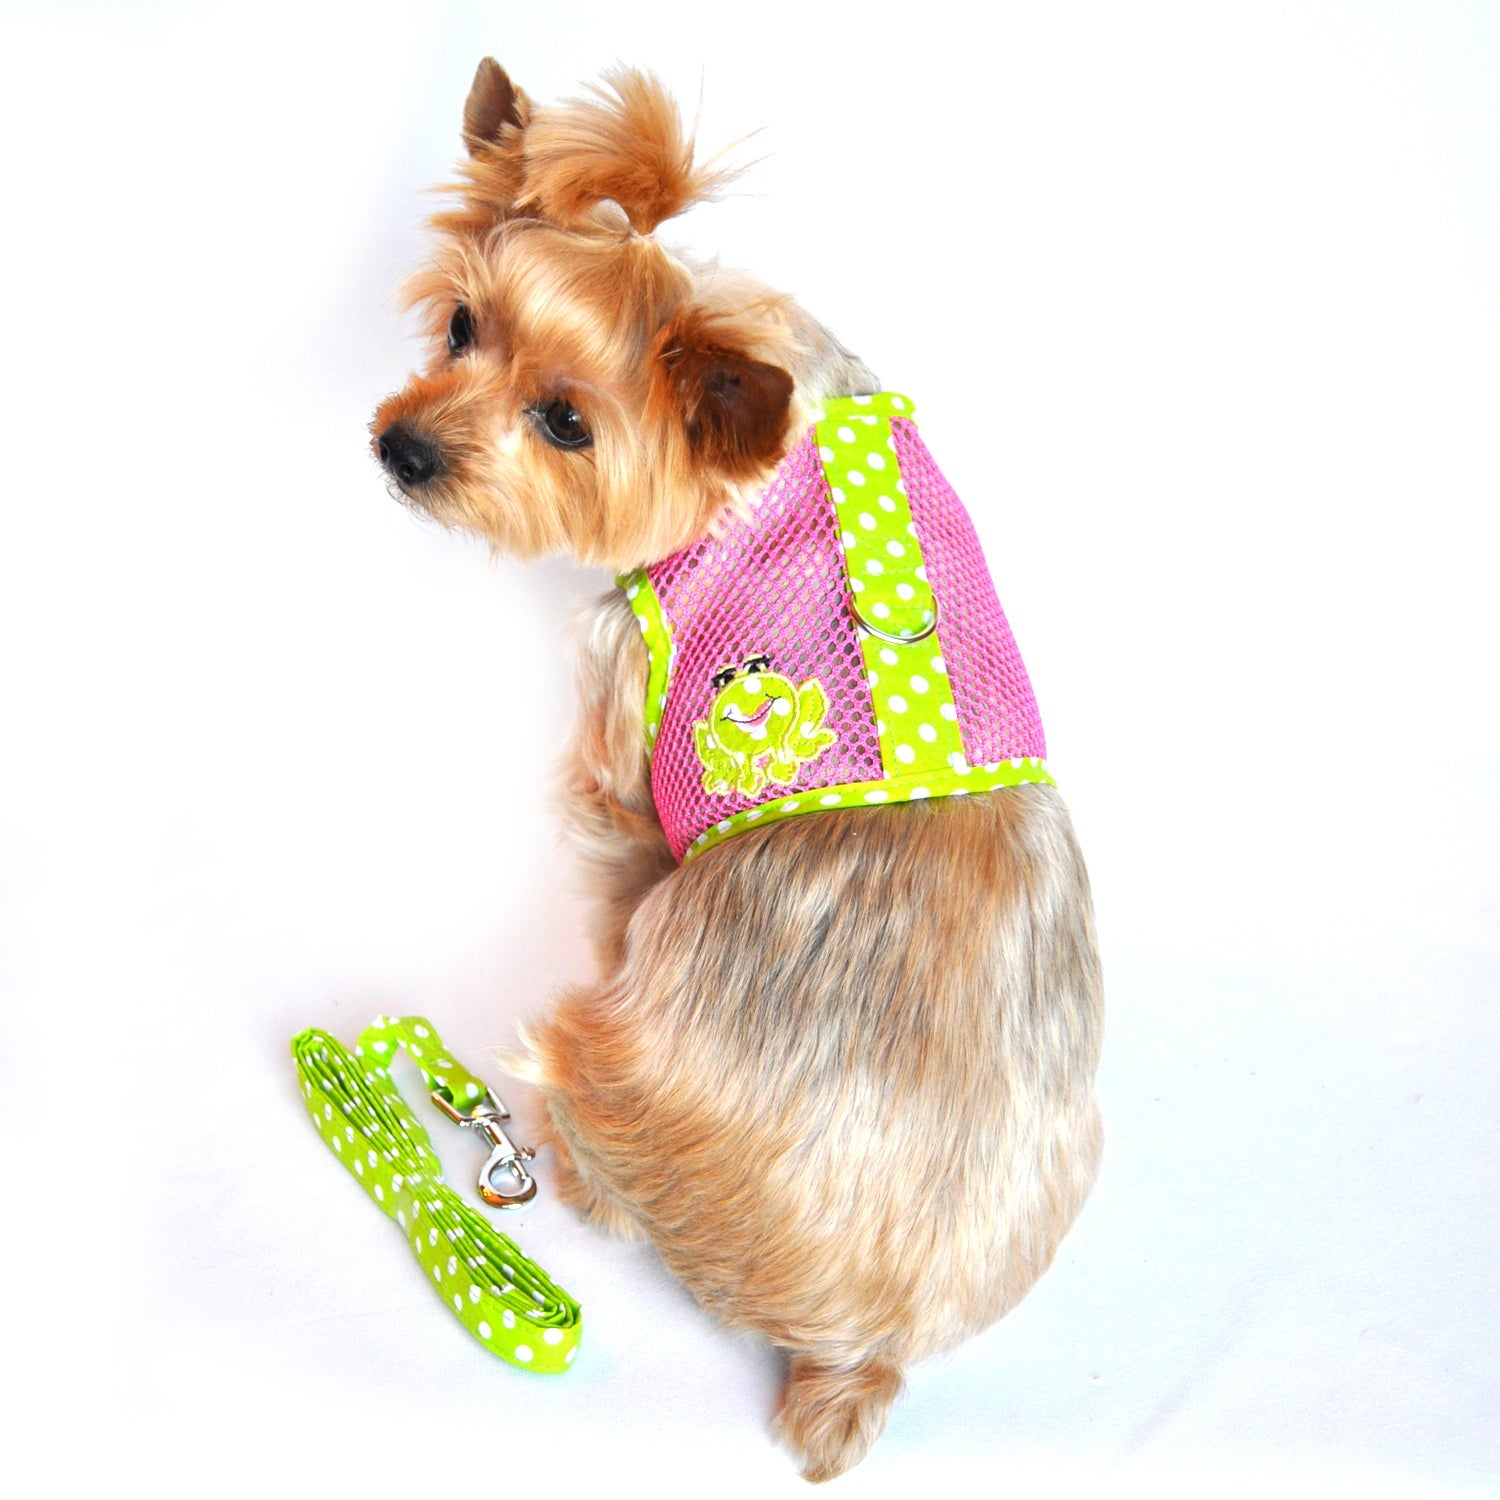 Cool Mesh Dog Harness (Solid Black - Small)